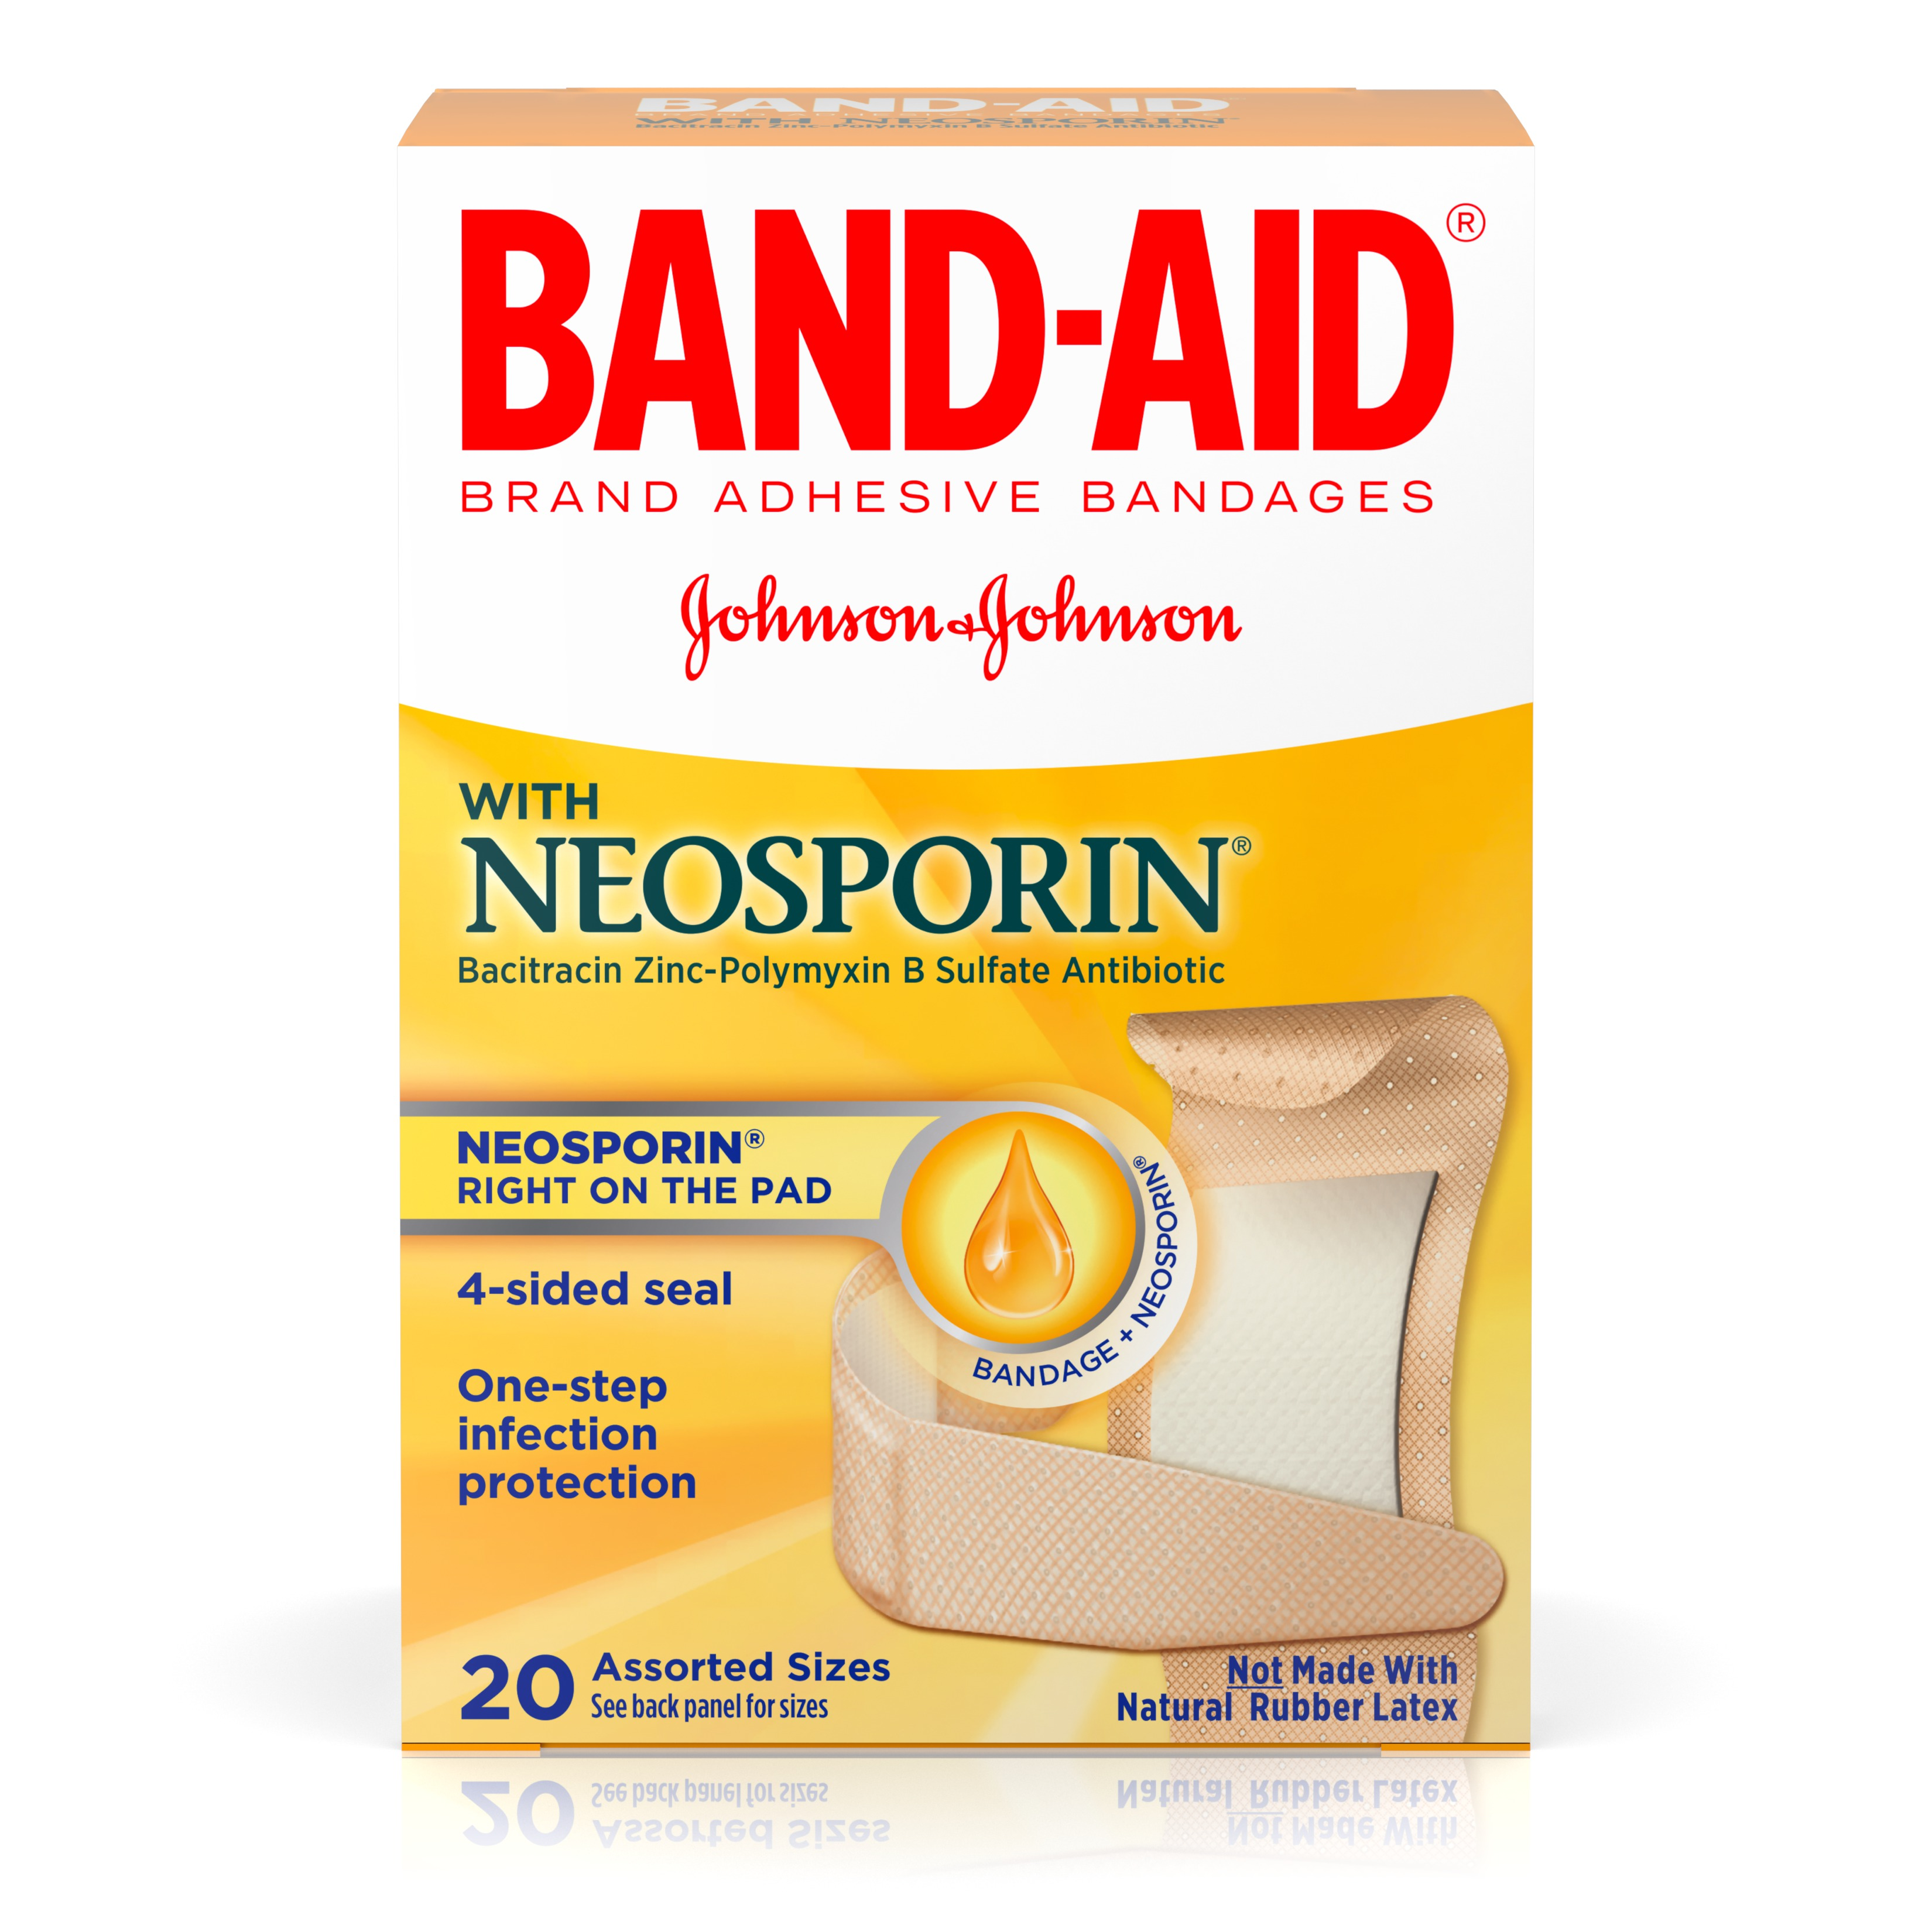 Band-Aid Brand Adhesive Bandages with Neosporin Antibiotic Ointment, Pack of Assorted Sizes, for Wound Care and First Aid, 20 ct